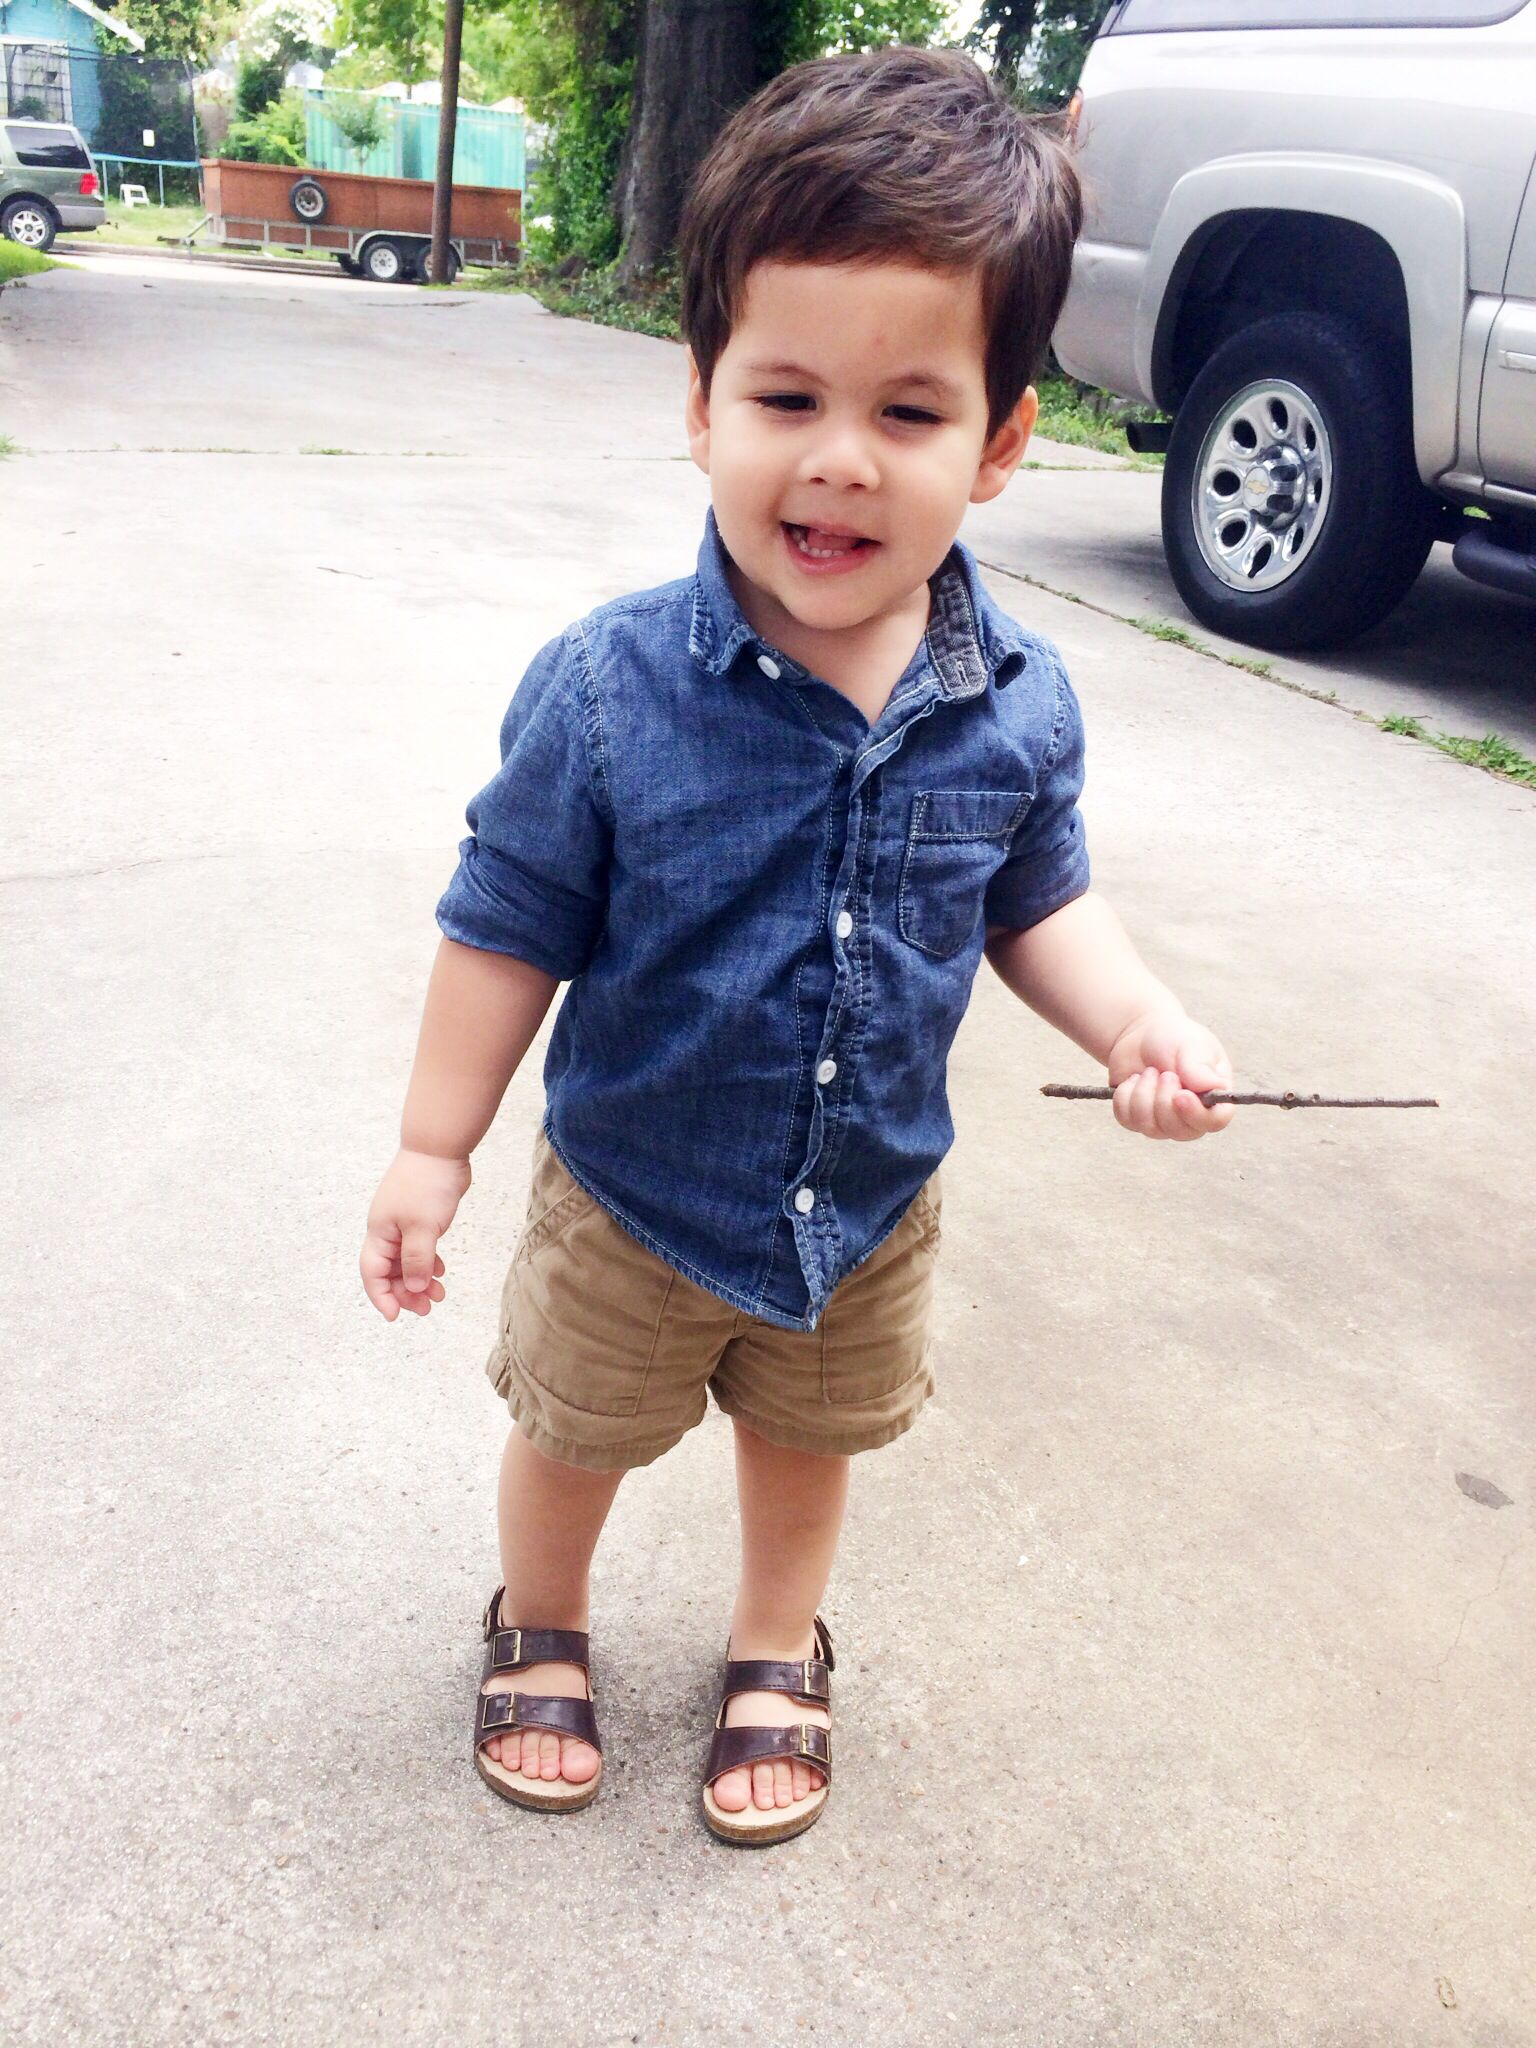 Black sandals for toddler boy - Toddler Boy Summer Outfit Crazy 8 Chambray Button Down On Cargo Shorts On